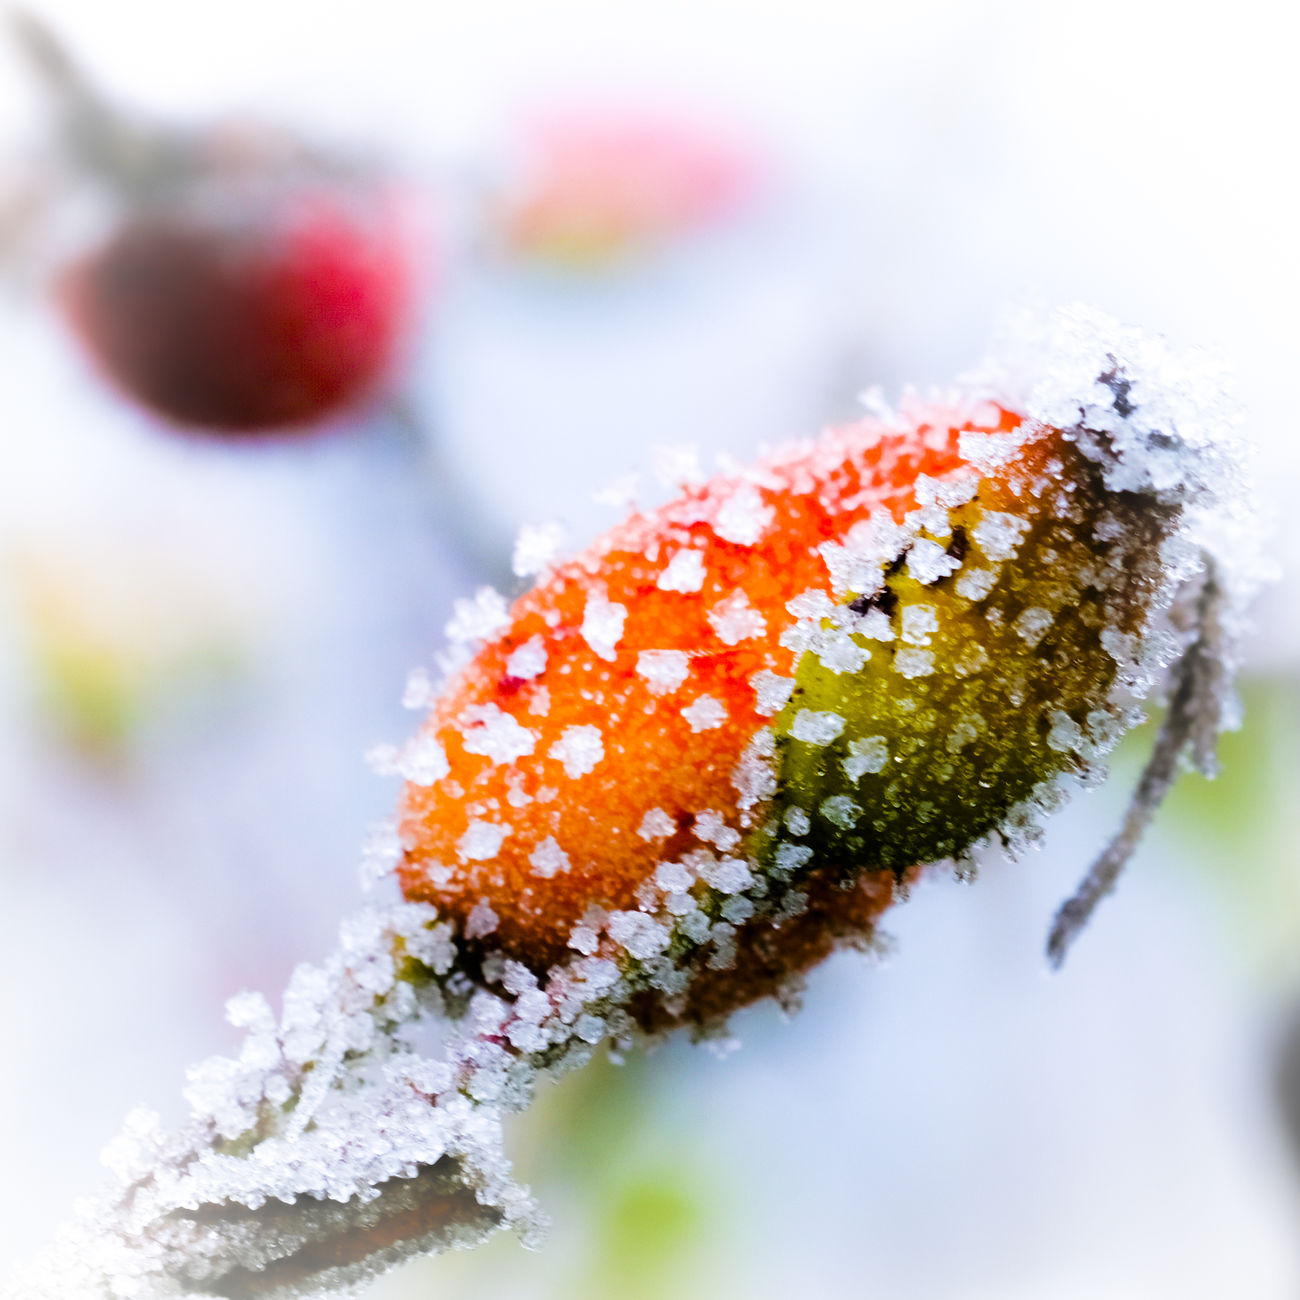 Winterfruit Beauty In Nature Bokeh Close-up Cold Temperature Day Eiskristalle Flower Flower Head Fragility Fresh On Eyeem  Freshness Frozen Hagebutten Nature No People Outdoors Red Winter Winter Wonderland